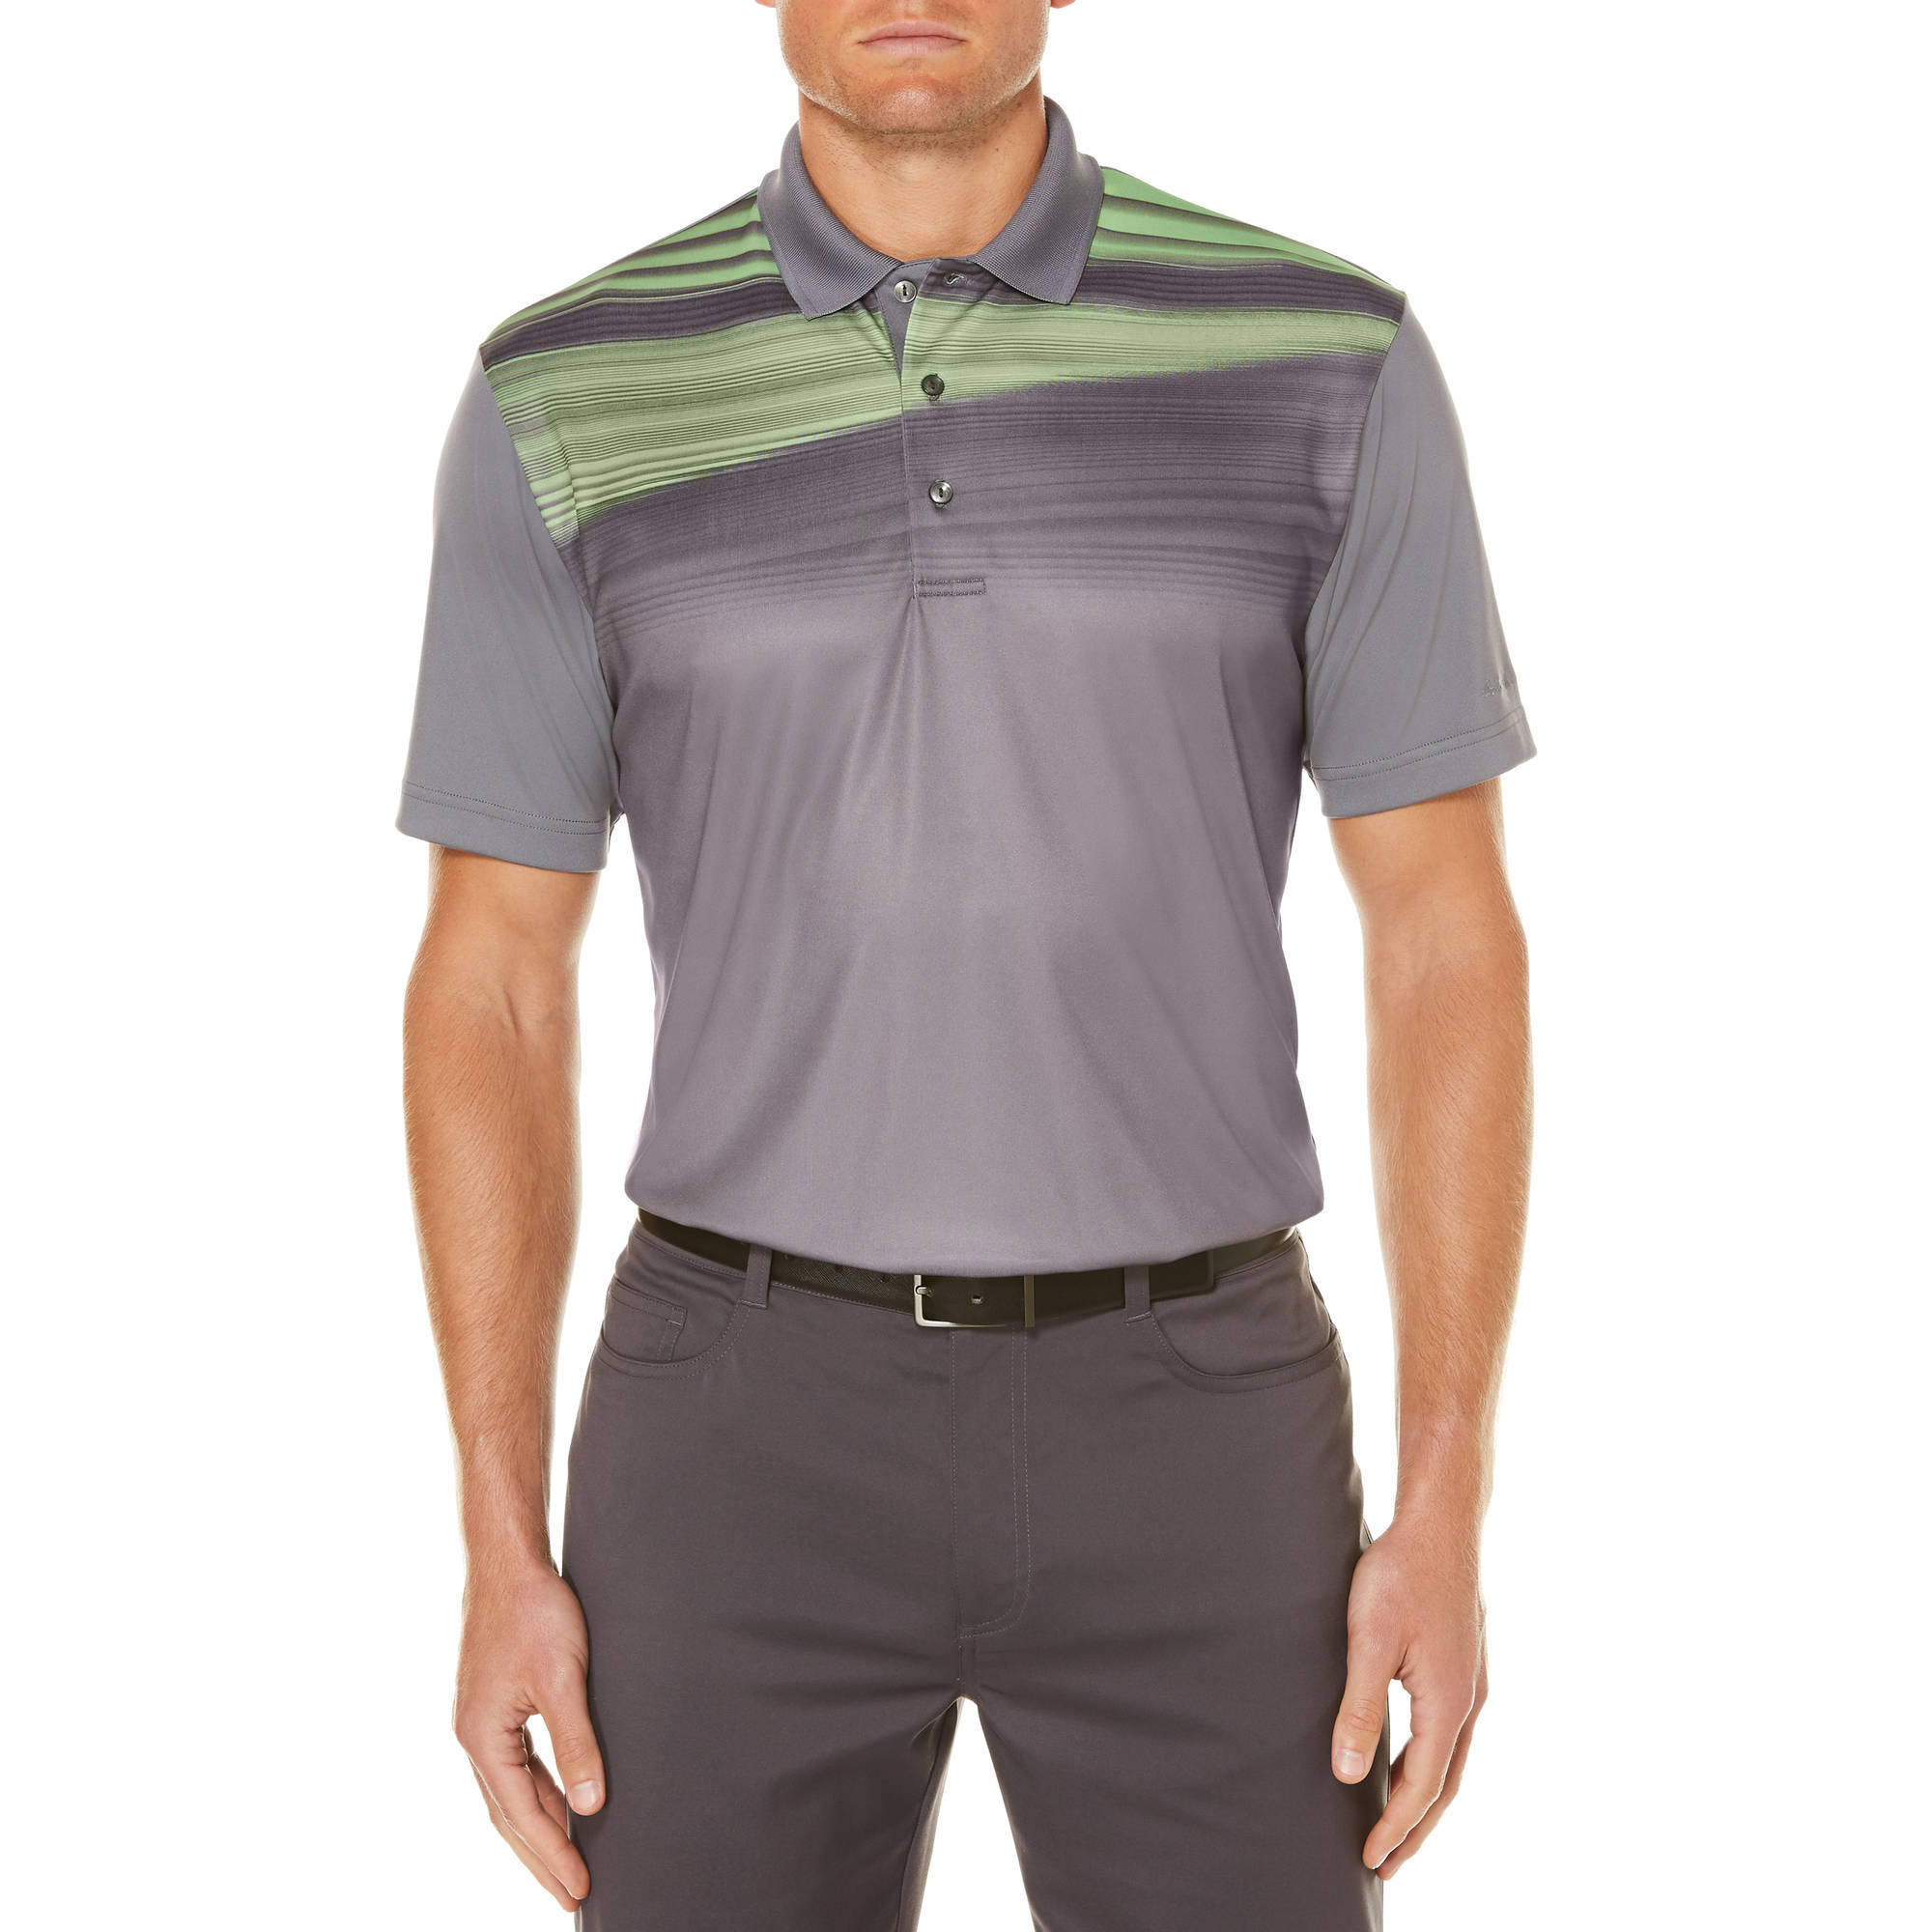 Men's Performance Short Sleeve Linear Chest Print Golf Polo Shirt